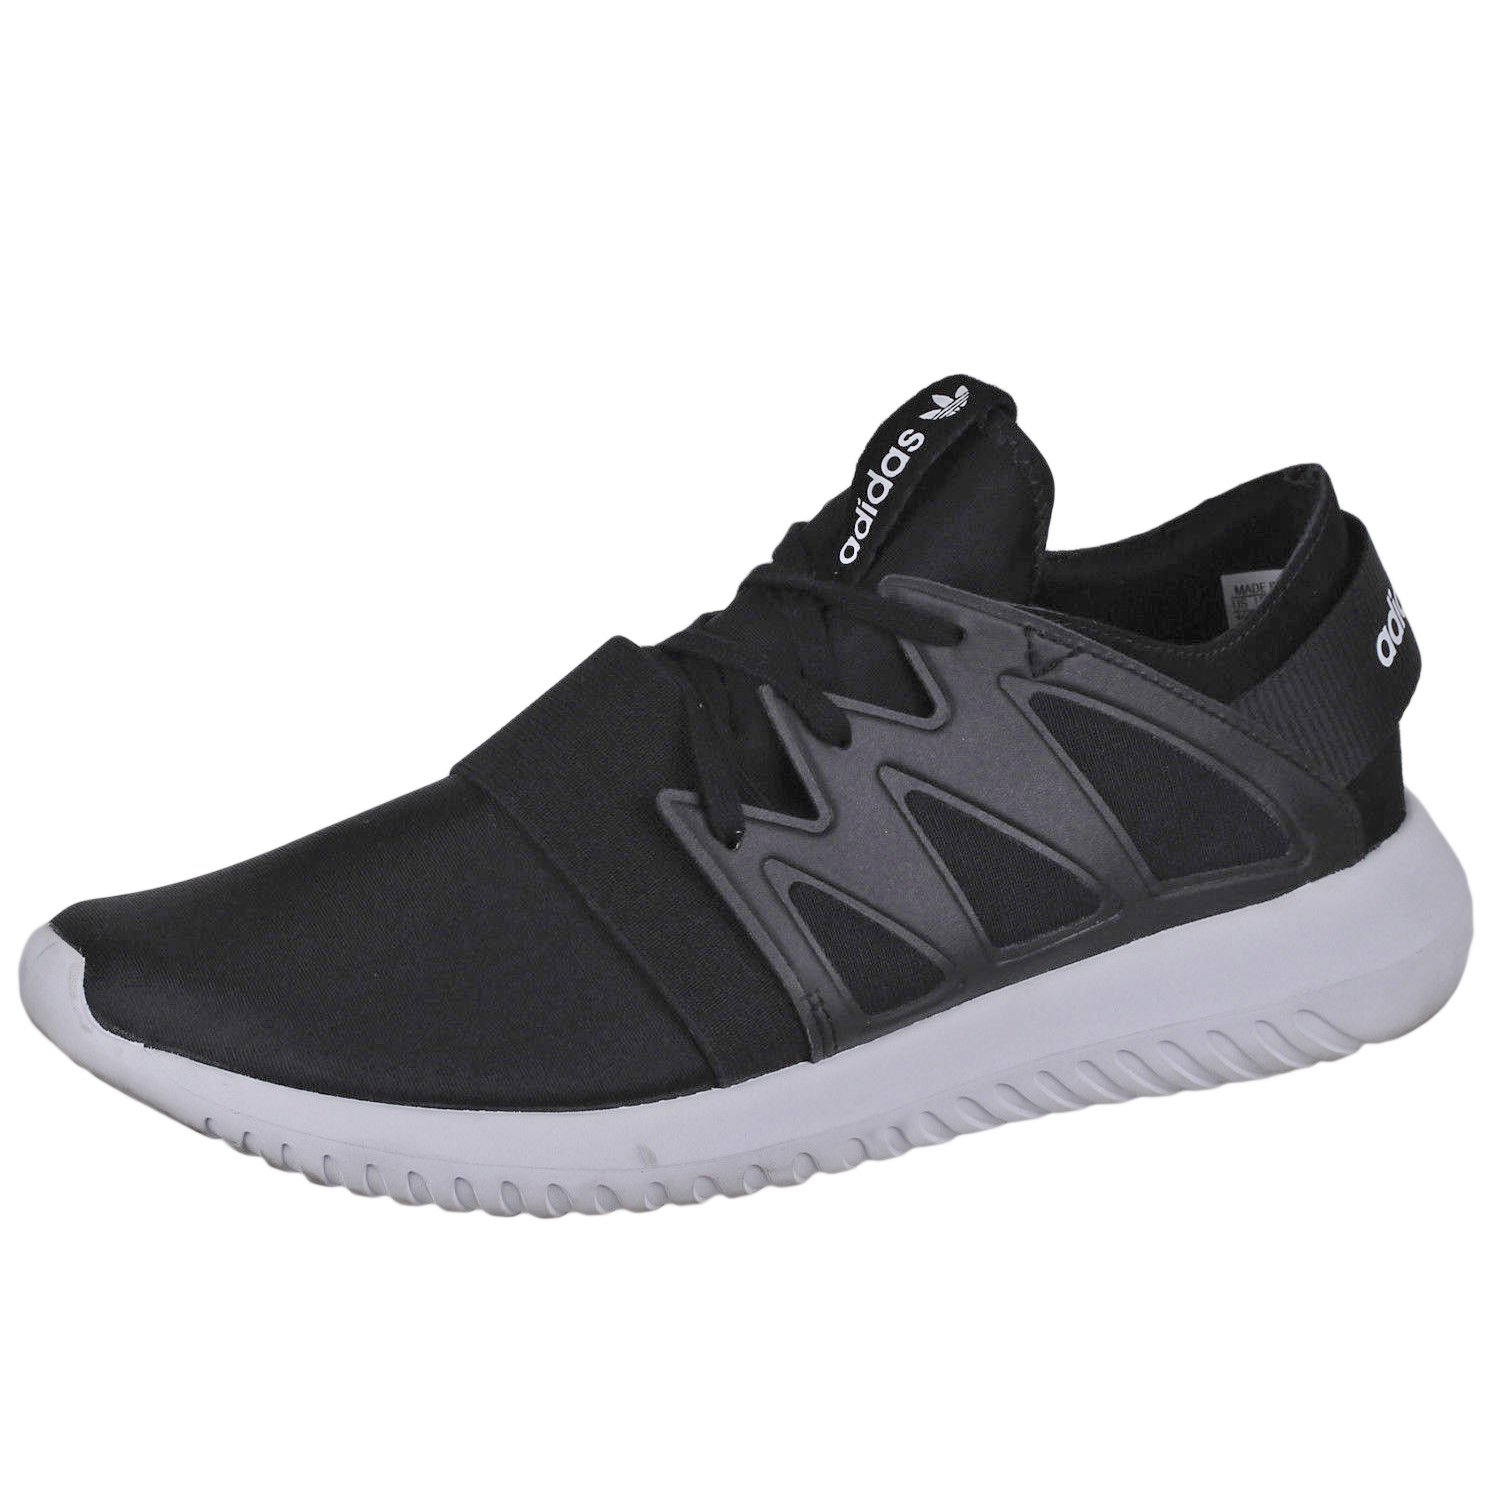 Adidas Originals Tubular Viral Womens Trainers S75581 in Black /& White Size 6.5